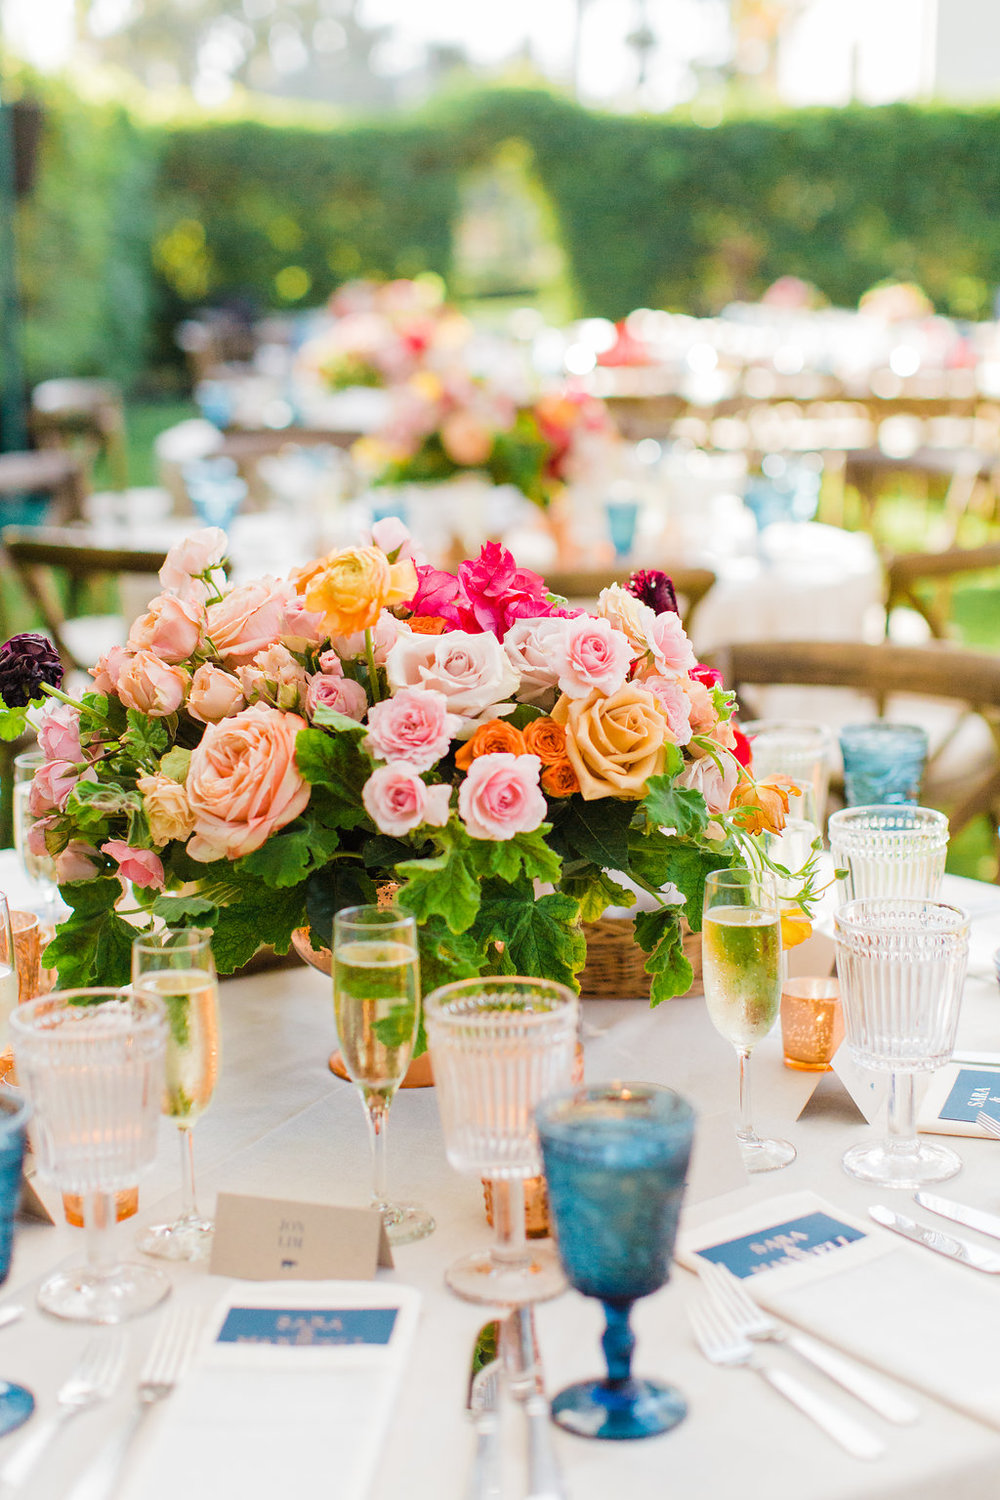 alegria-by-design-wedding-planner-planning-coordinator-day-of-month-event-design-santa-barbara-courthouse-garden-university-club-riviera-mansion-blue-bright (15).jpg